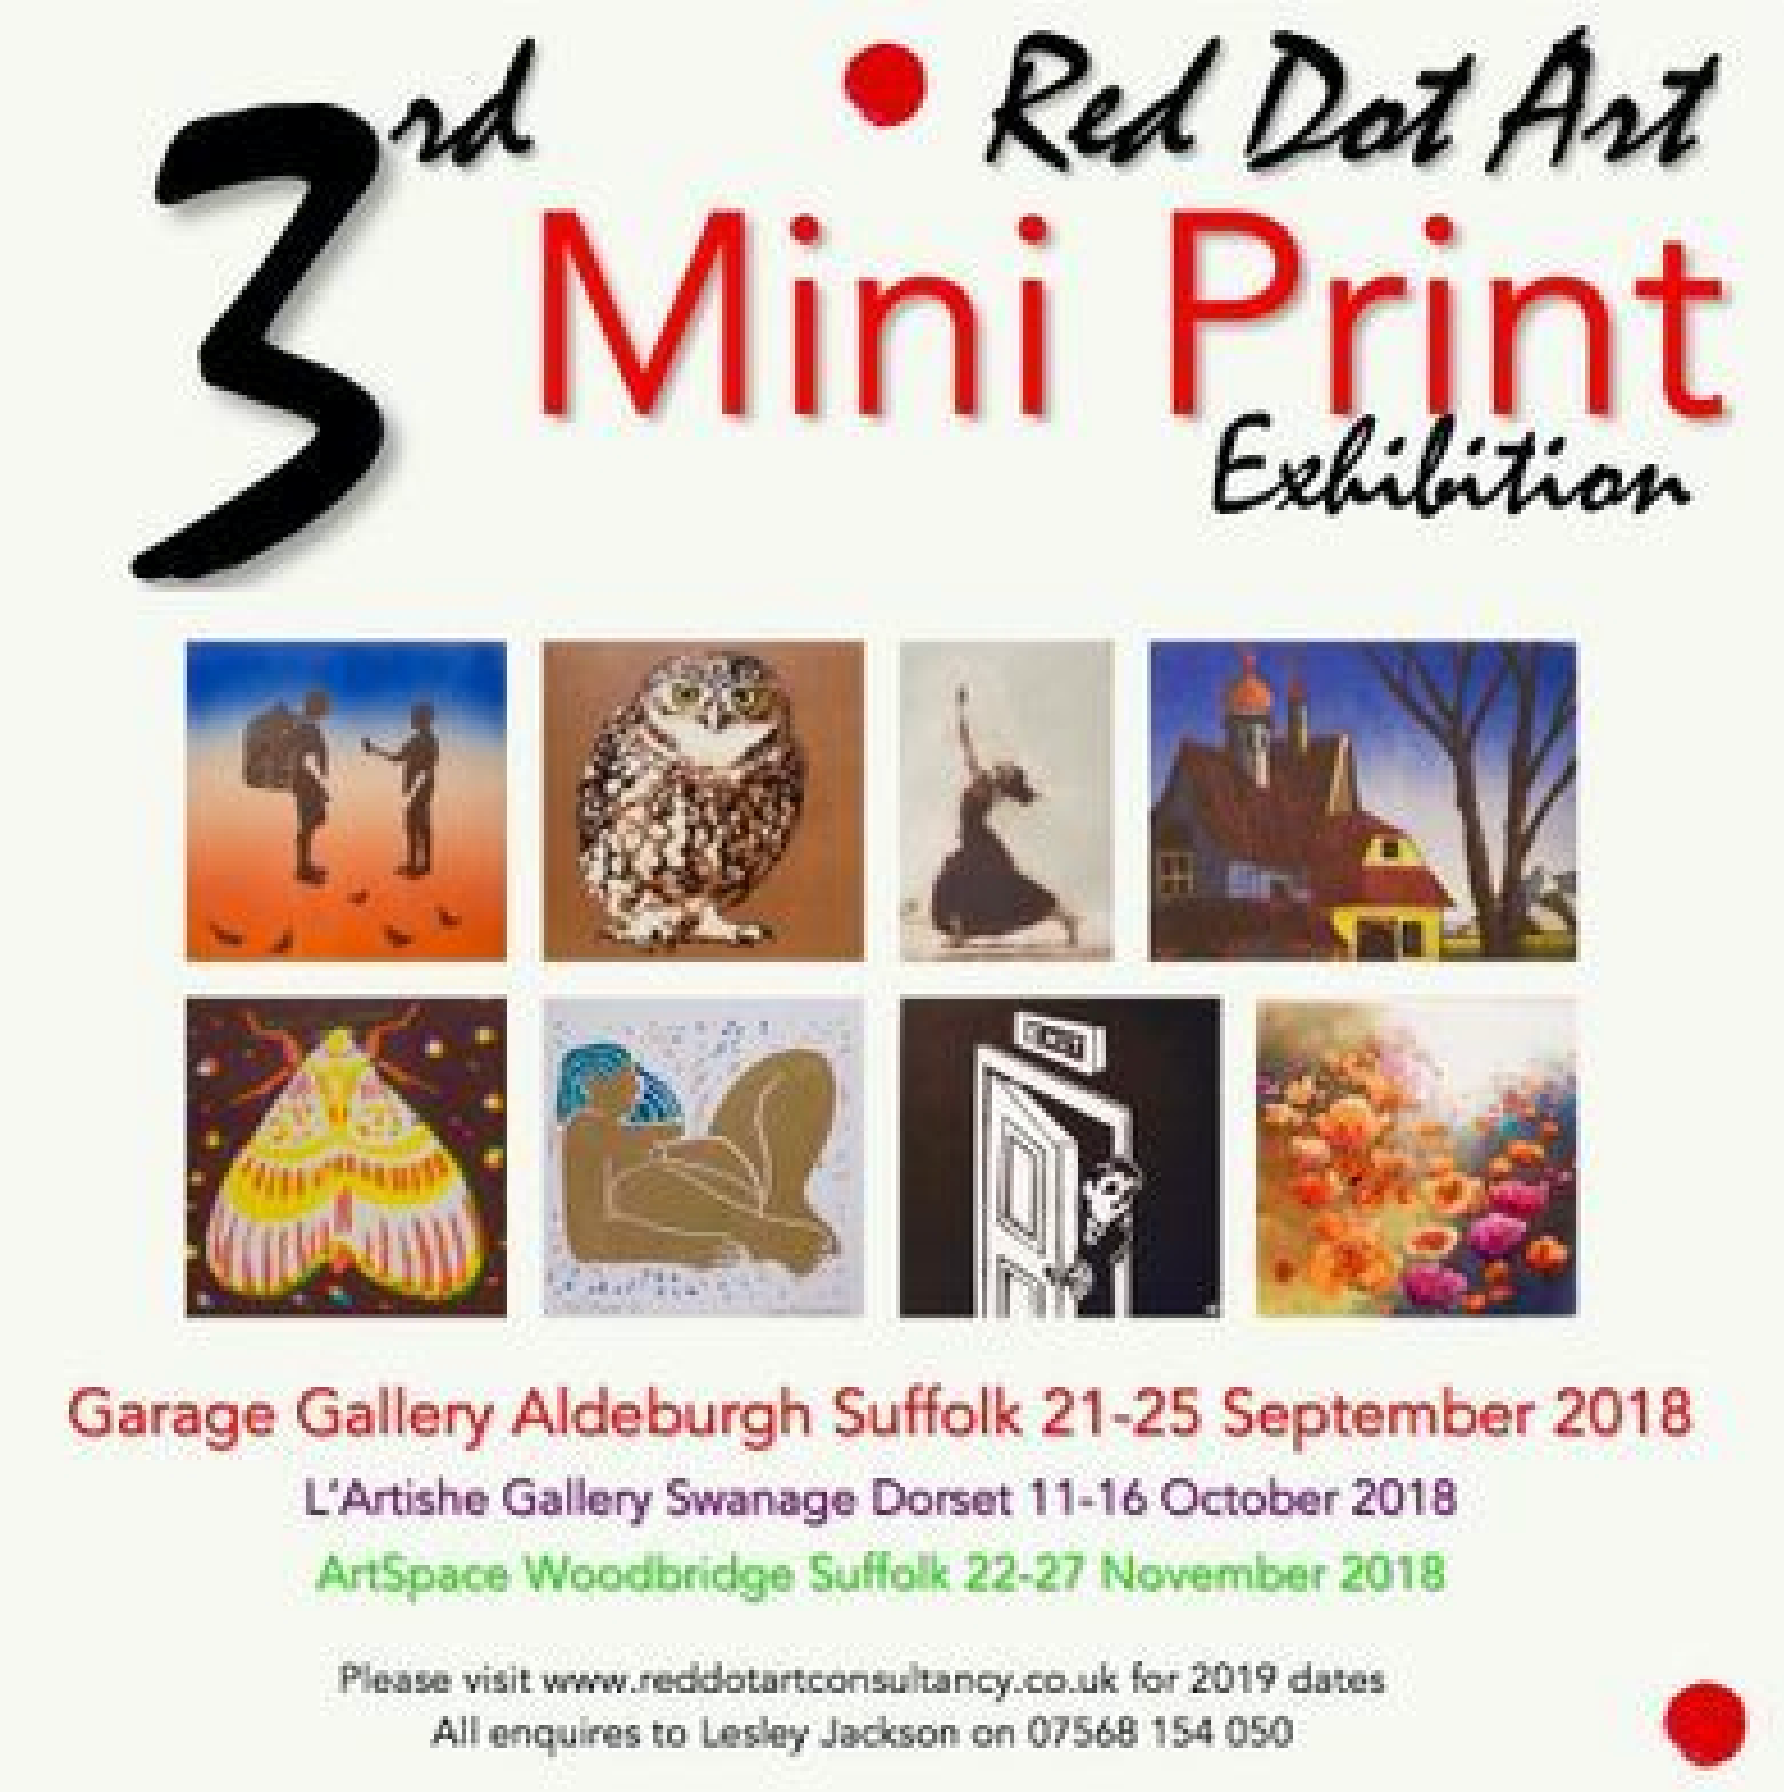 3rd Red Hot Mini Print Exhibition